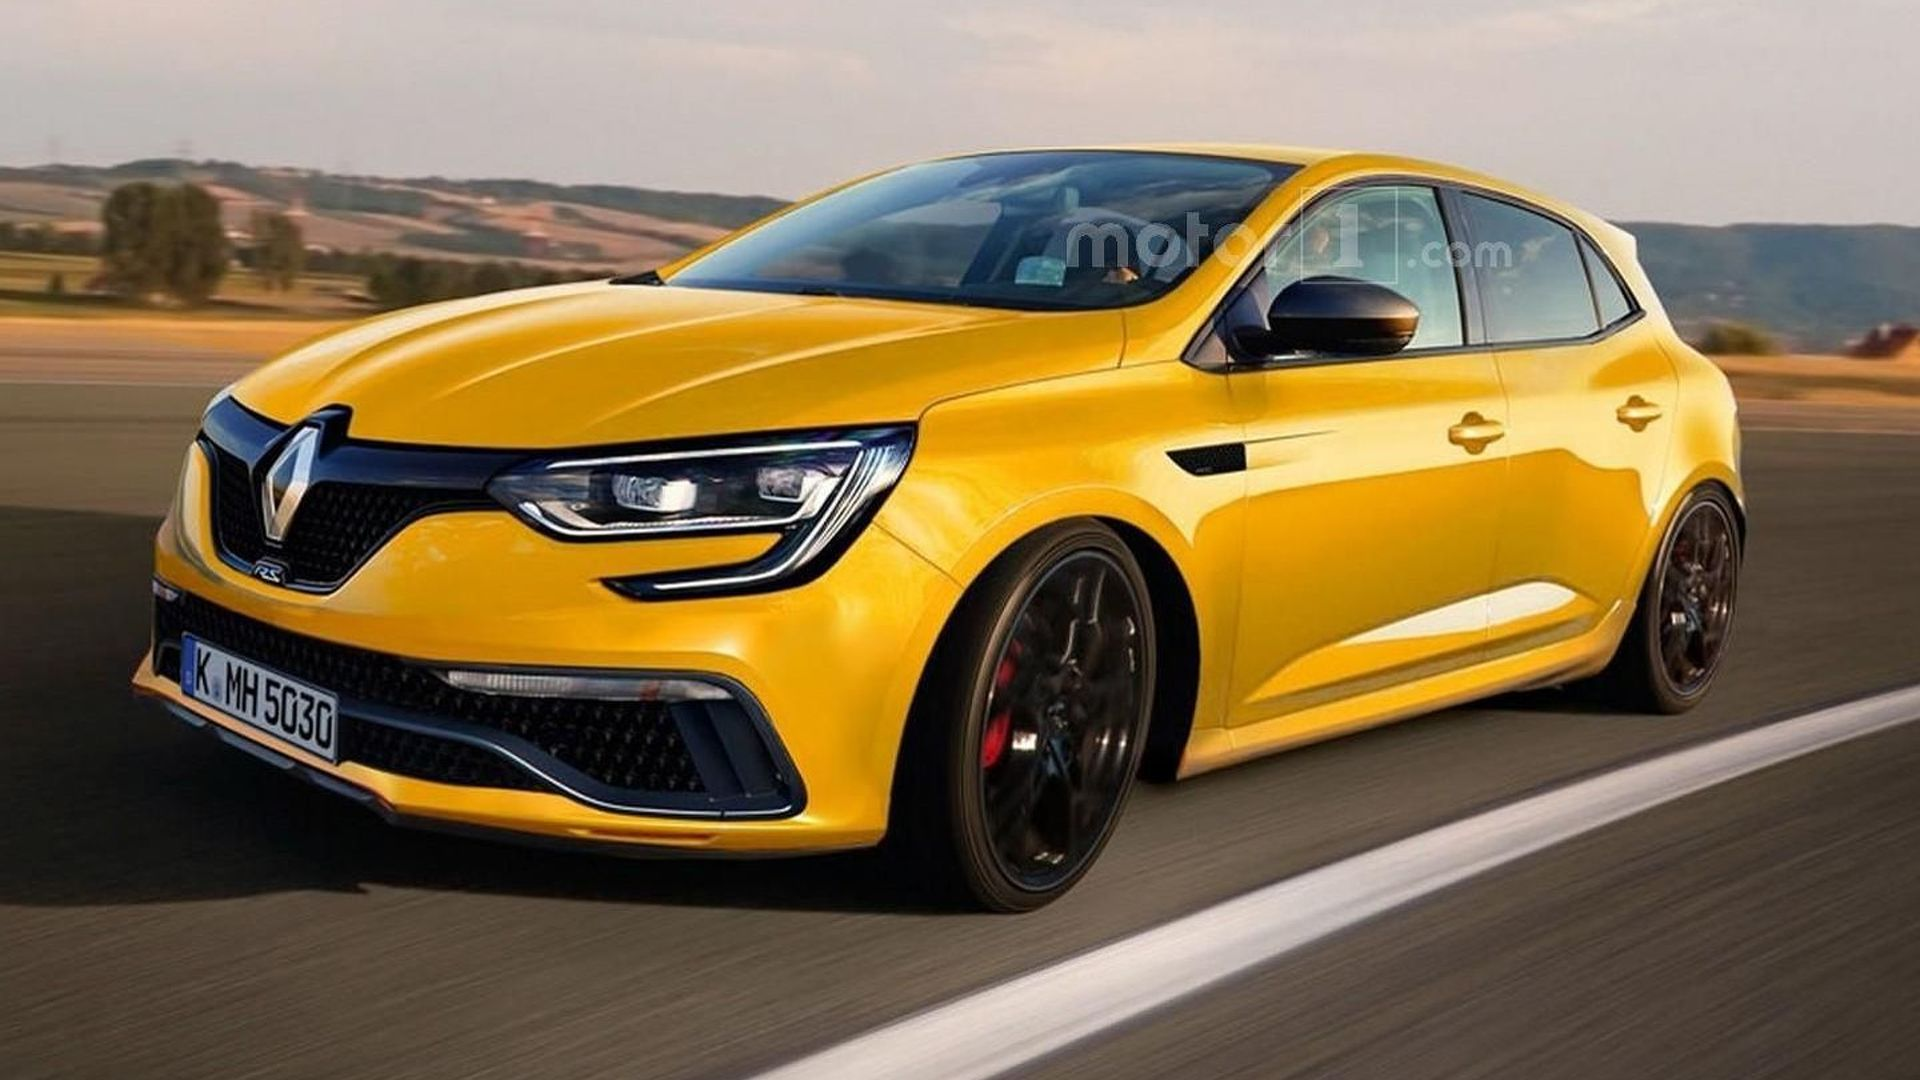 2018 Renault Megane RS to have 300+ hp, AWD?